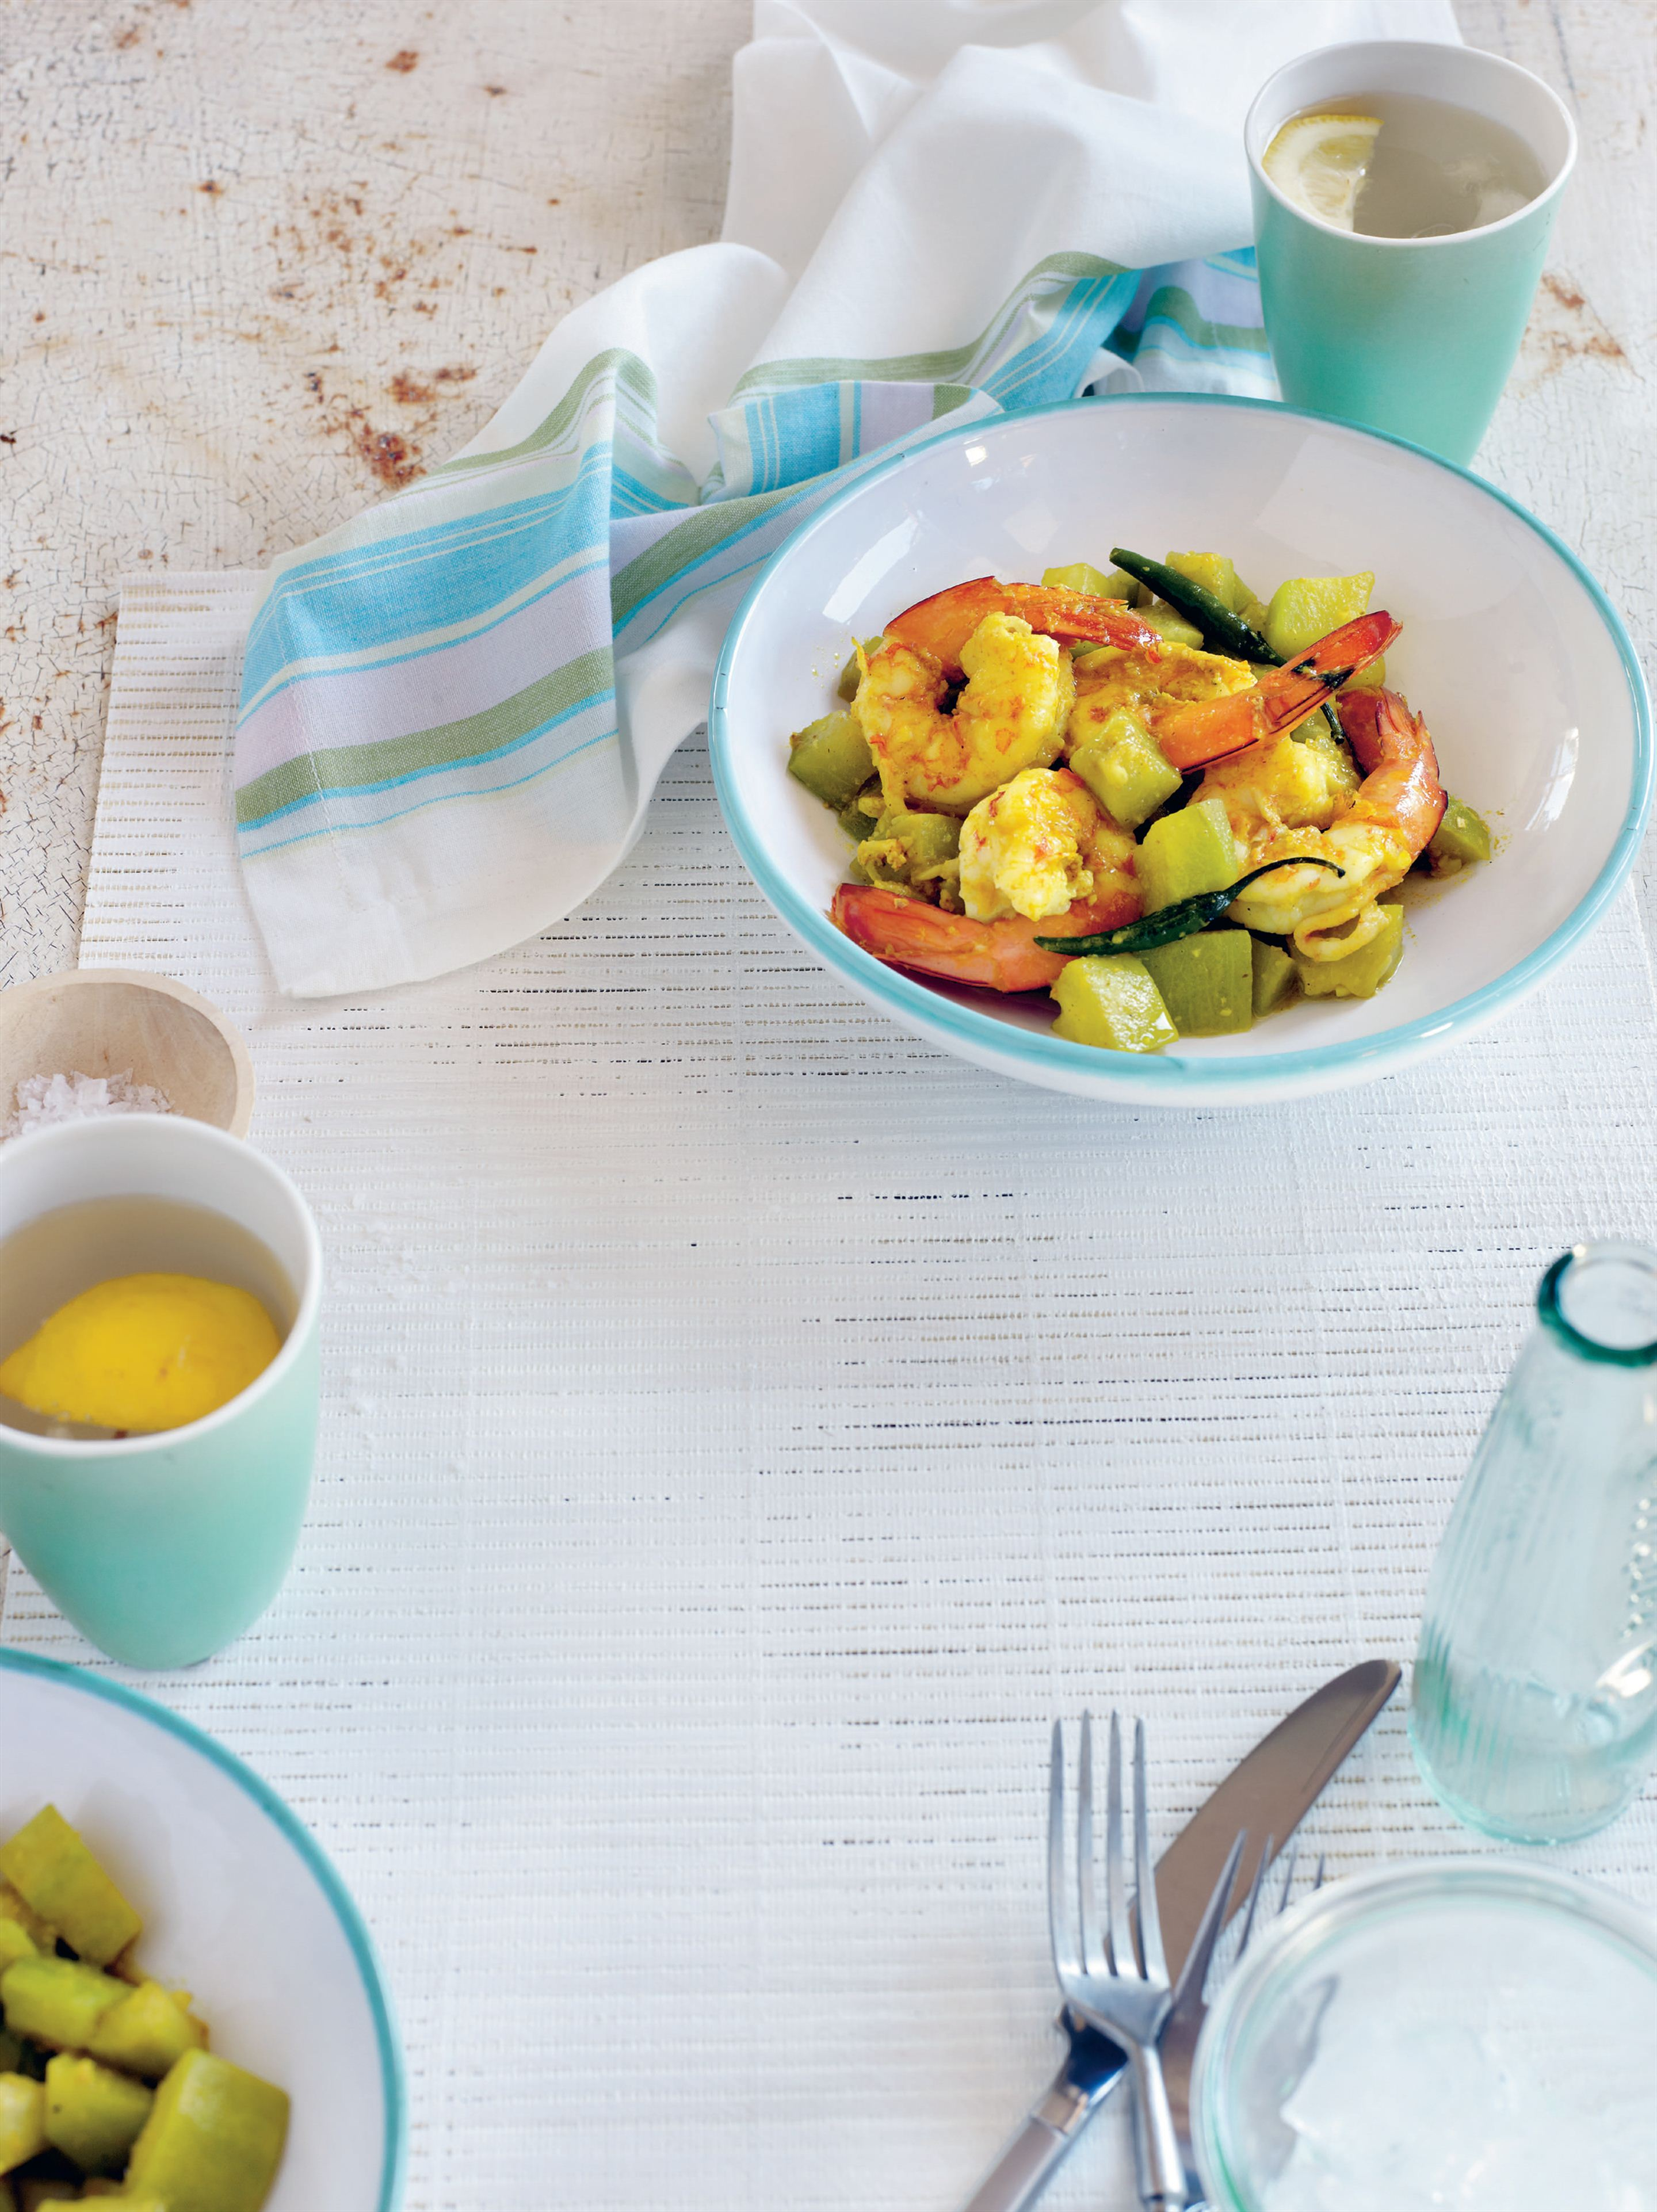 Prawns with zucchini